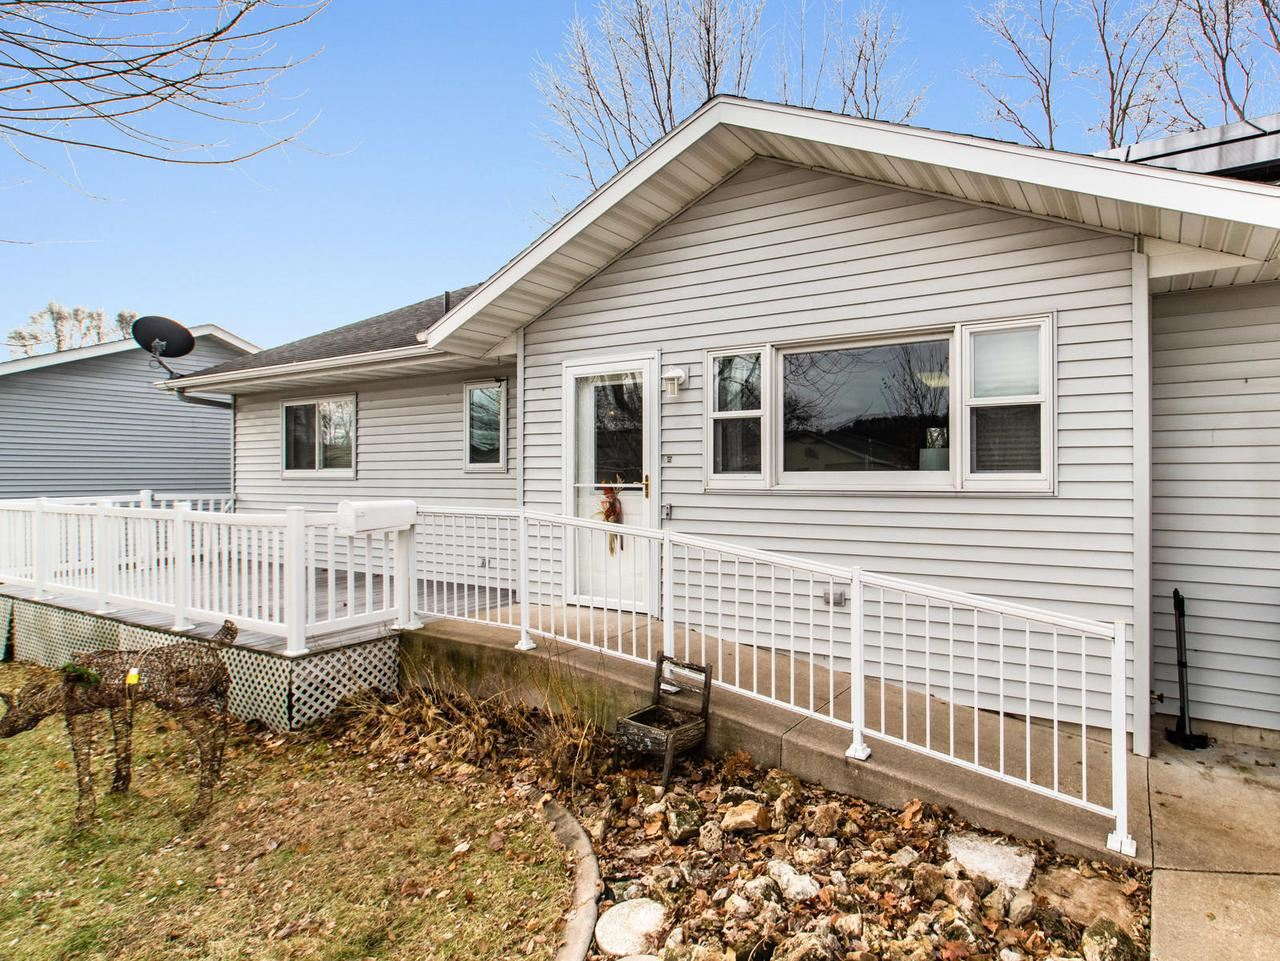 973 8TH Ave N, Montreal, WI 54650 - MLS#: 1668486